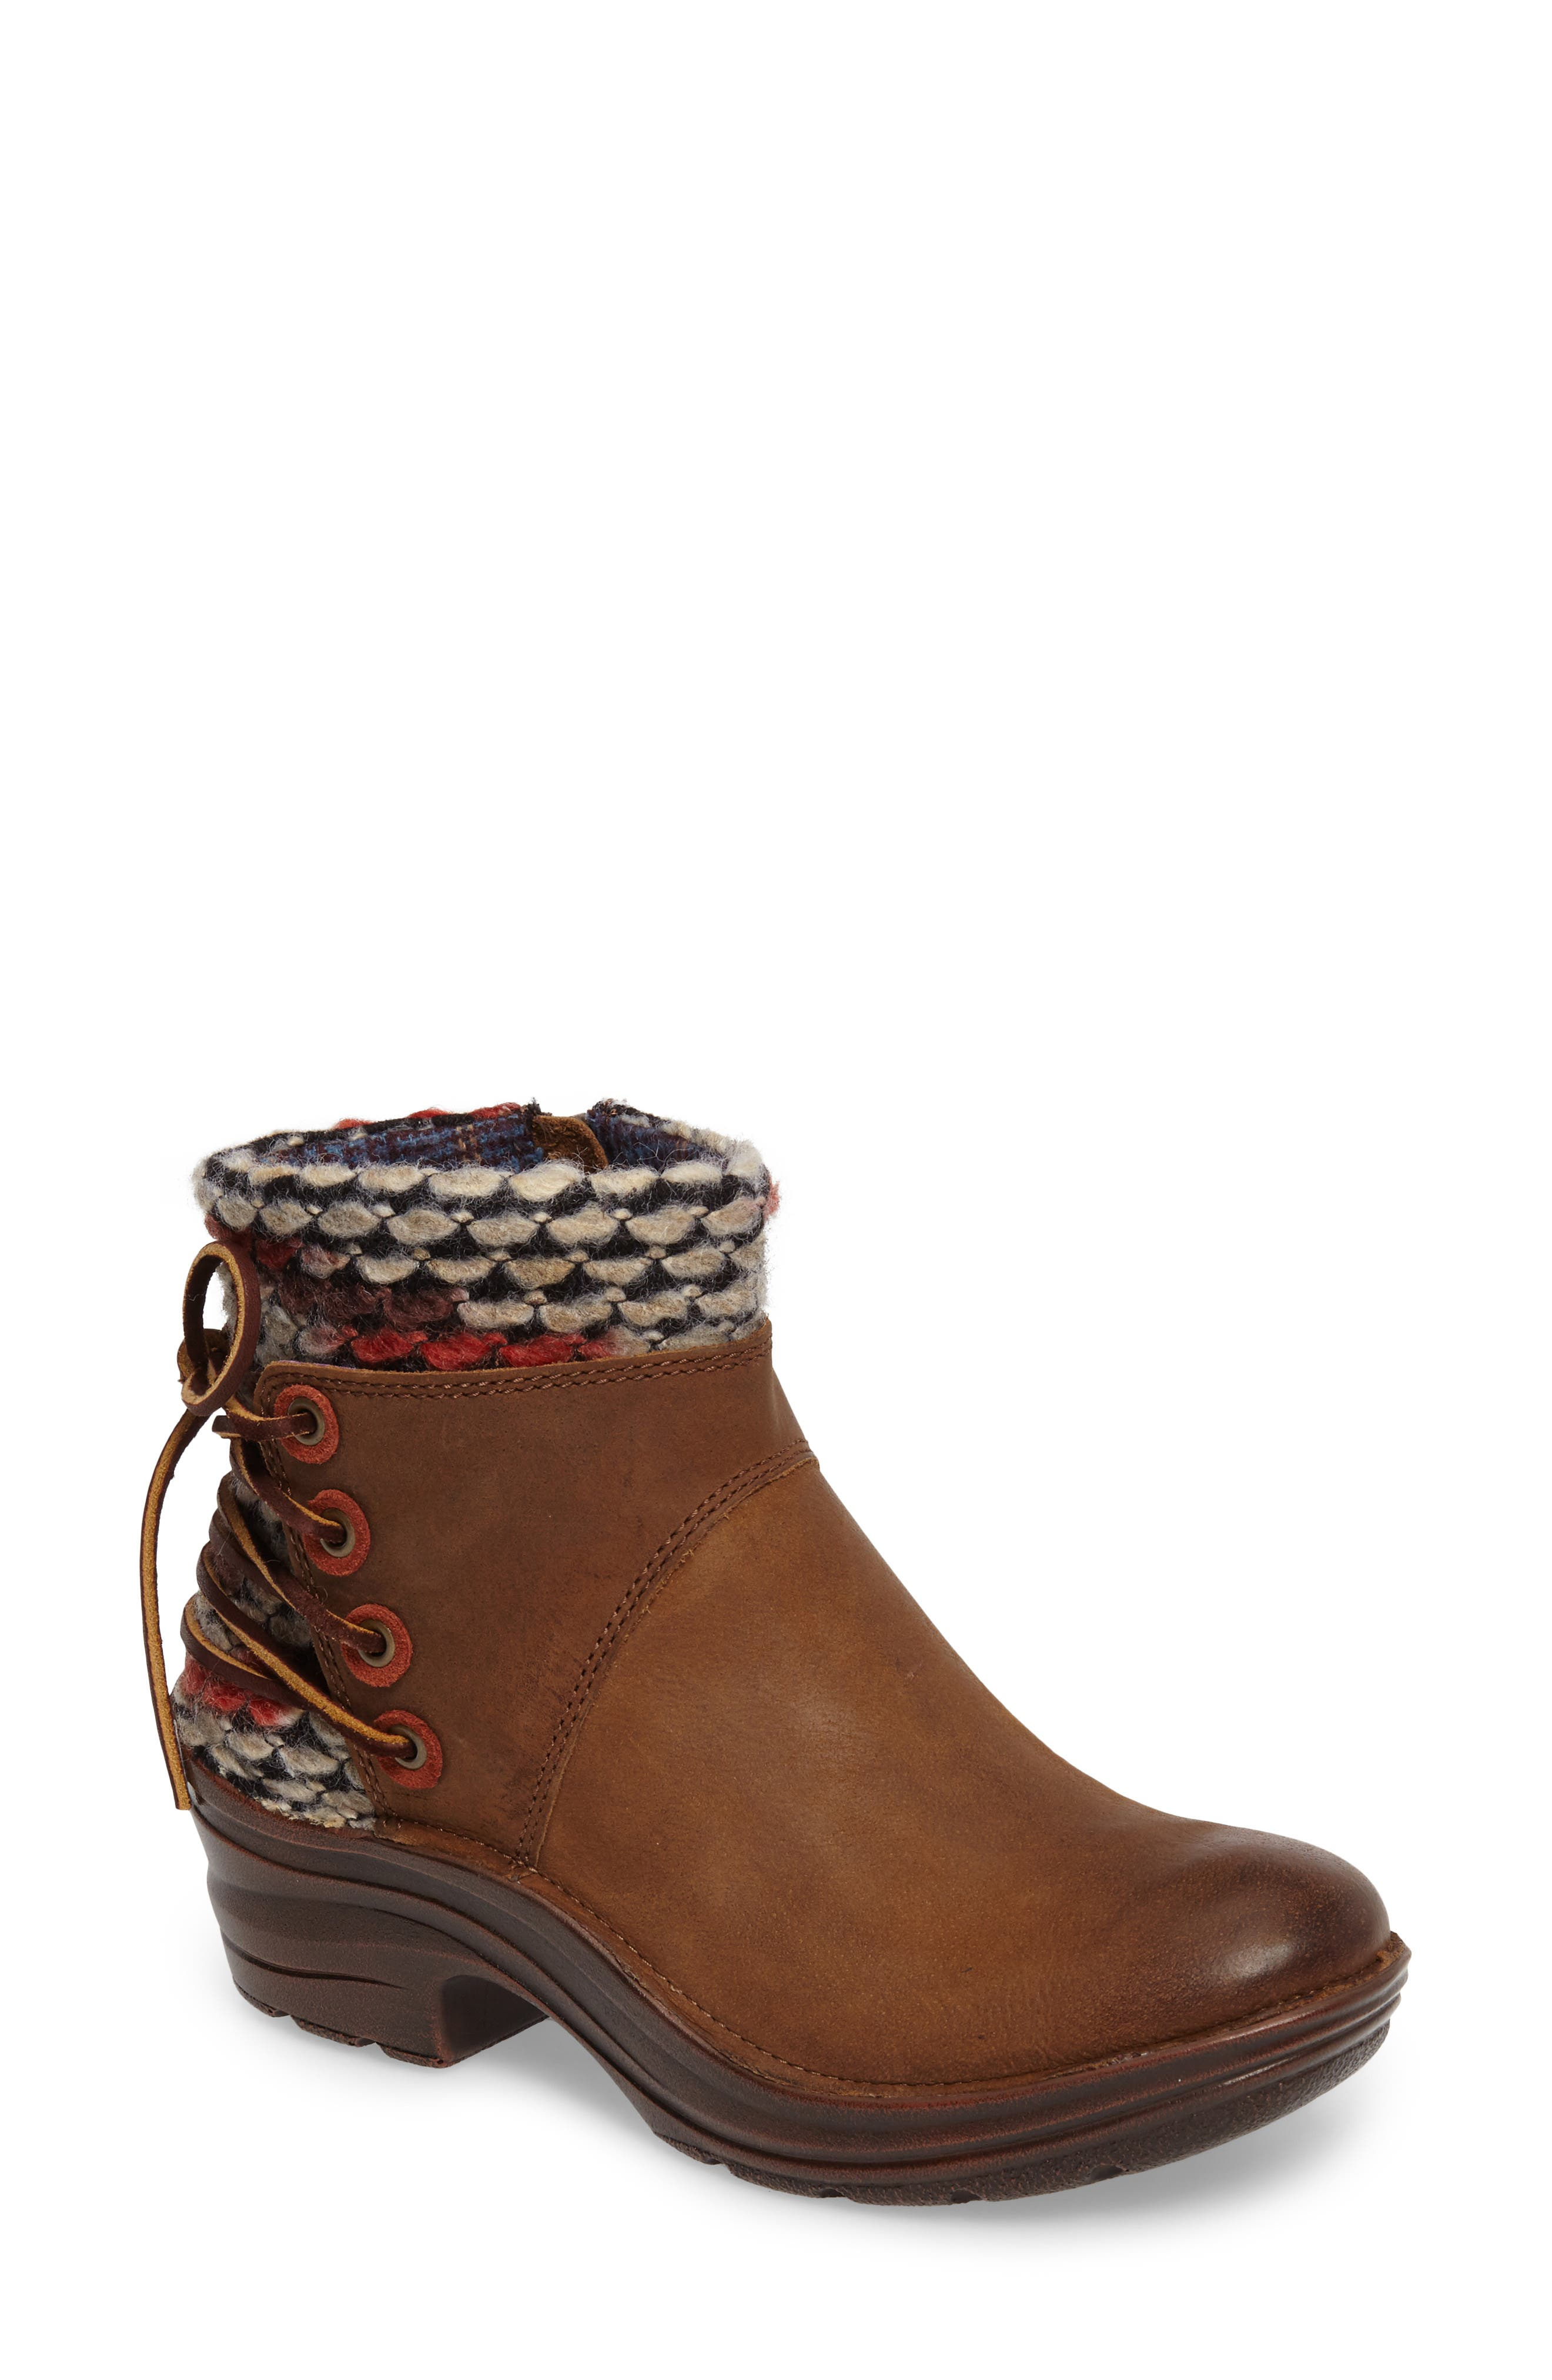 Reign Bootie,                             Main thumbnail 1, color,                             Dark Brown Leather